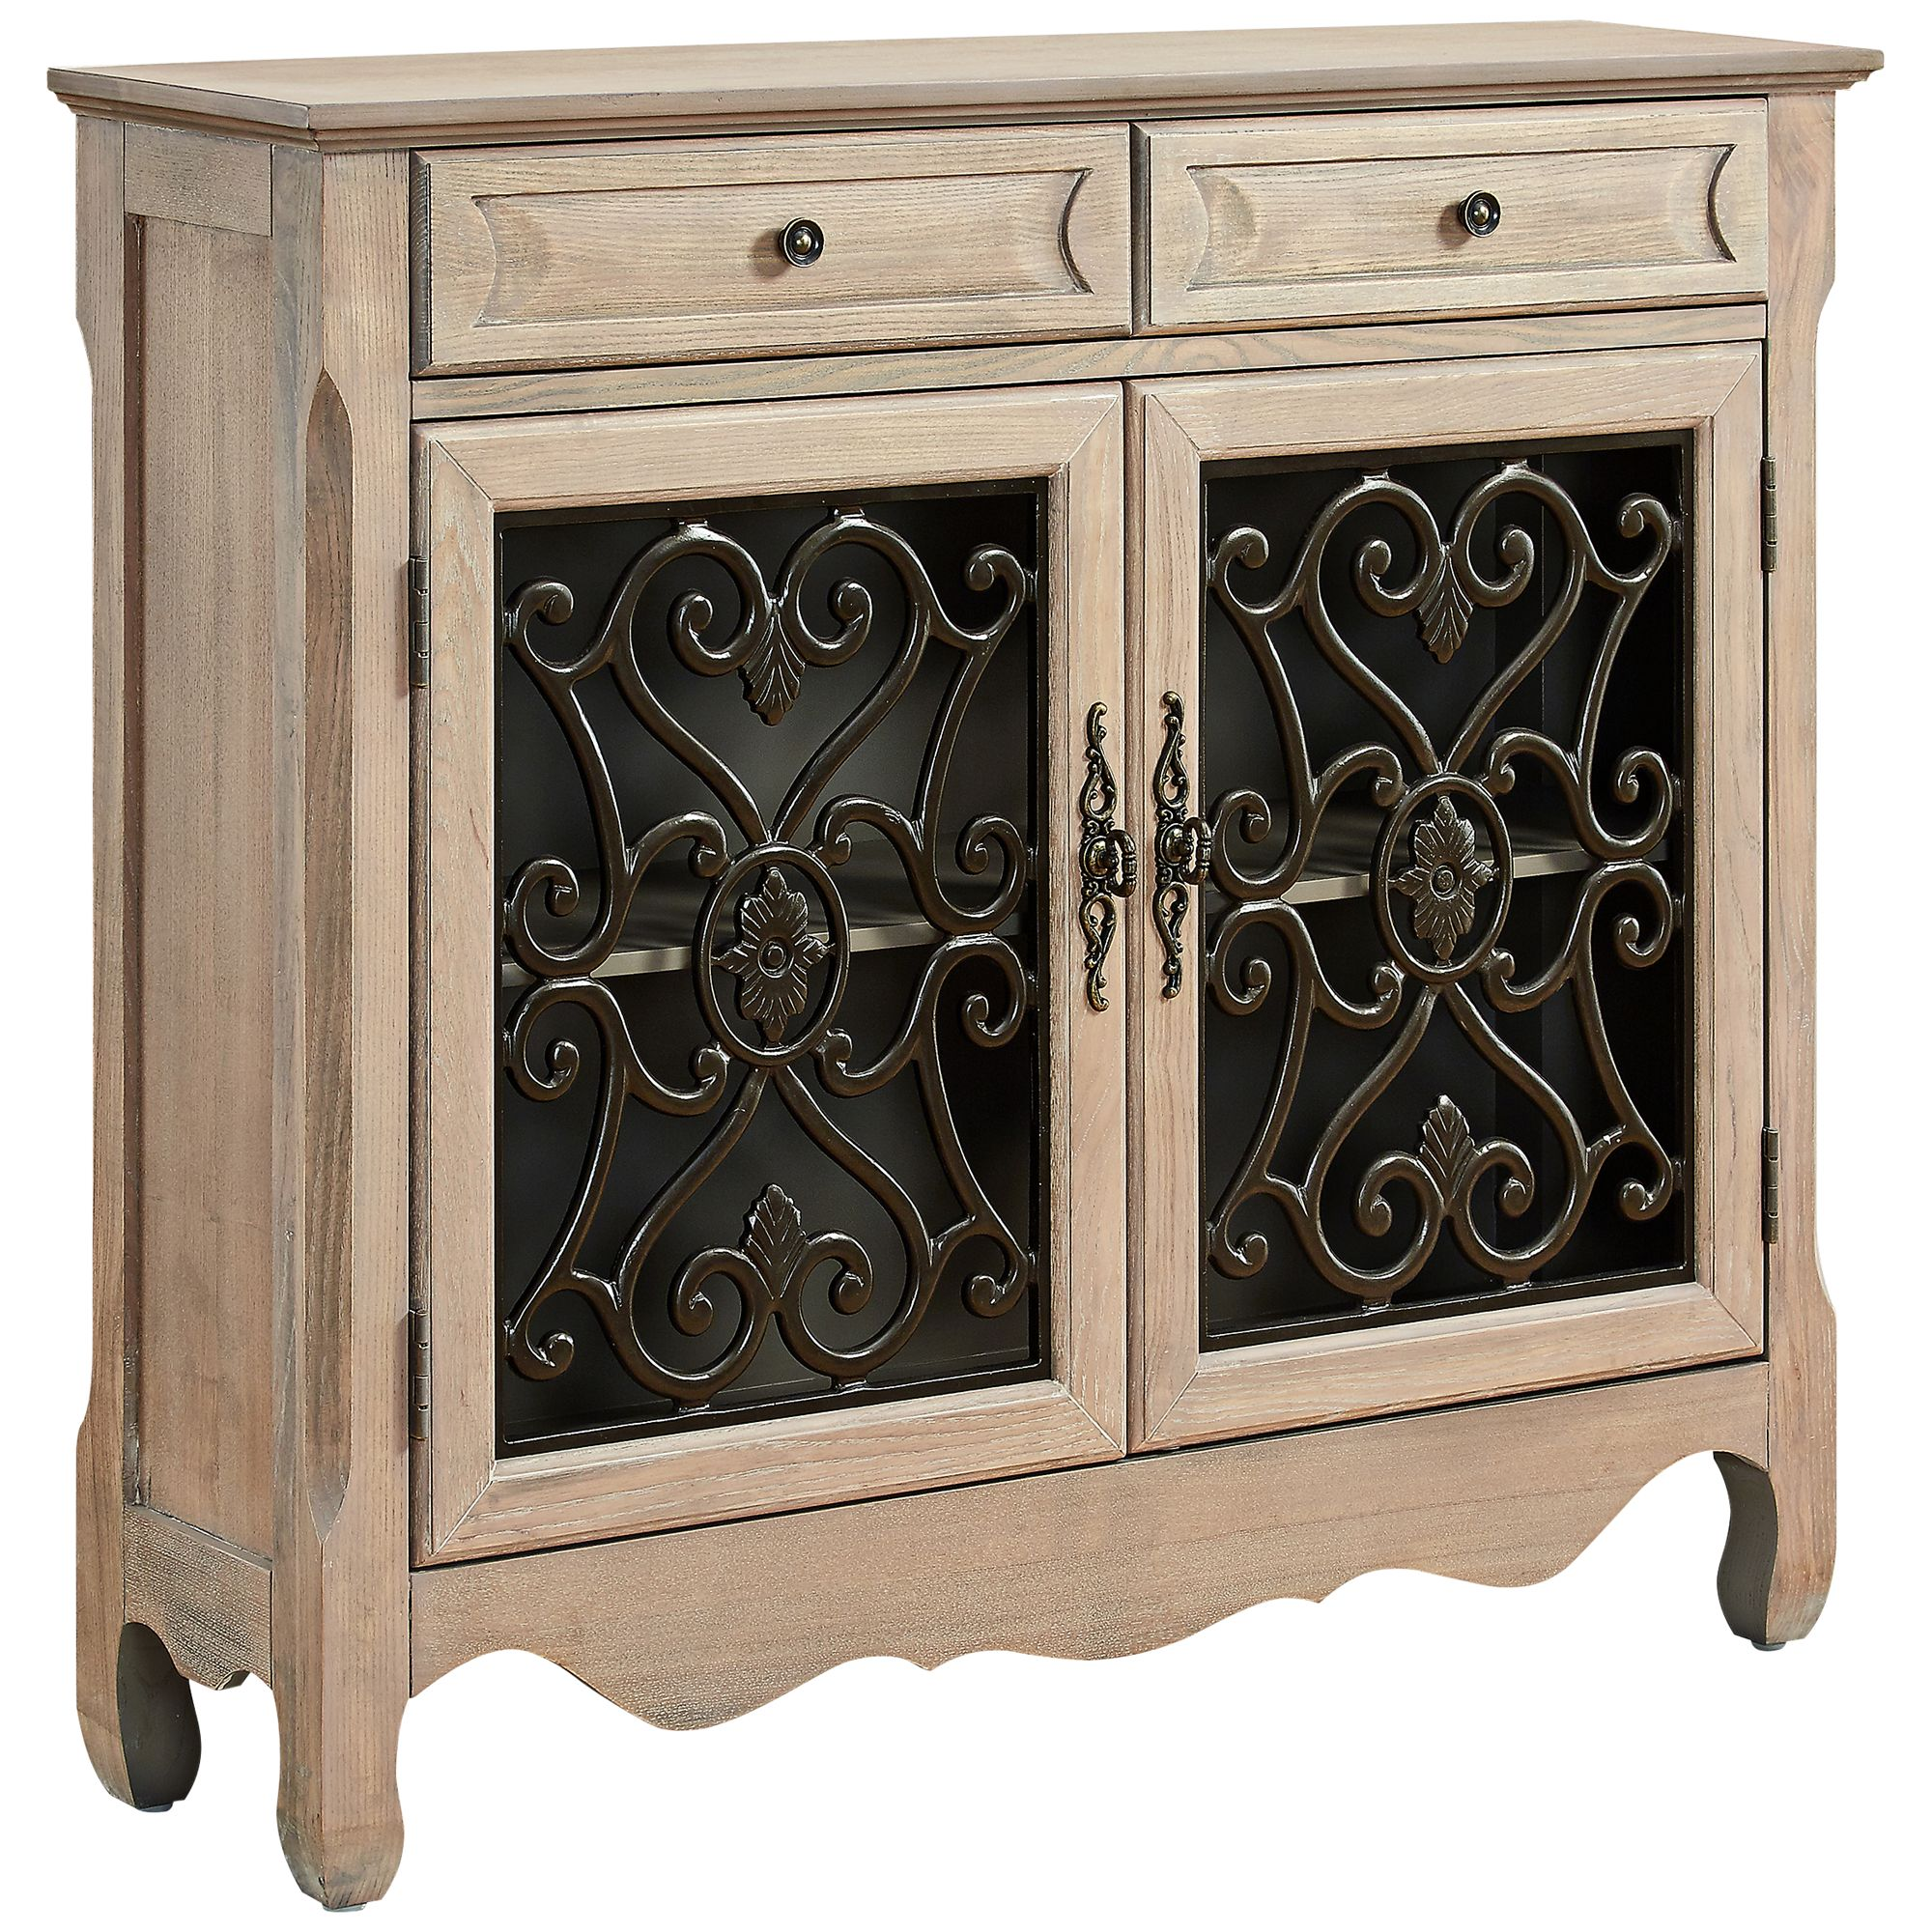 Beau Maravilla 2 Door 2 Drawer Natural Console Cabinet